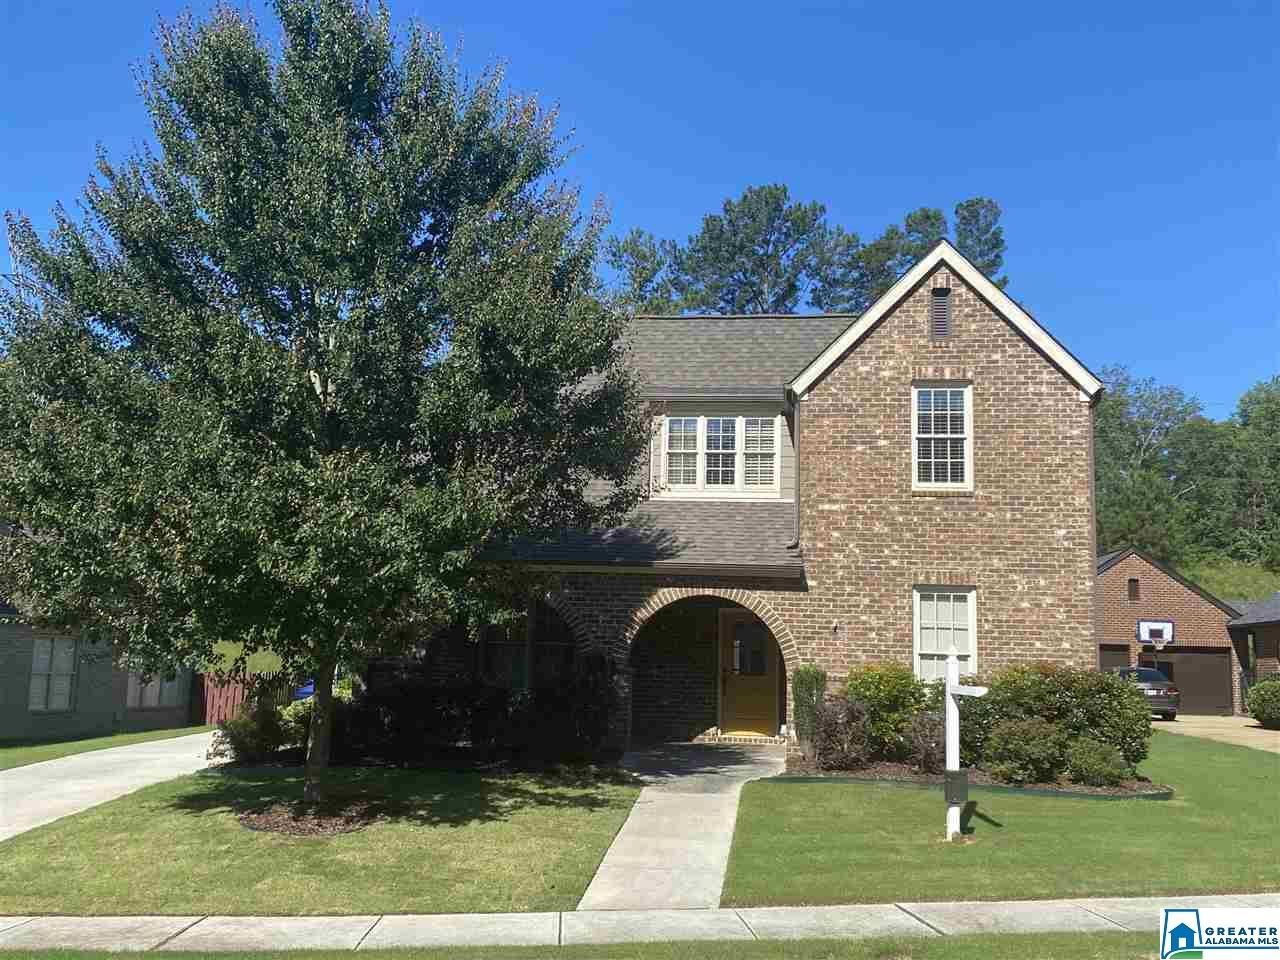 3709 JAMES HILL TERR, Hoover, AL 35226 - MLS#: 885856